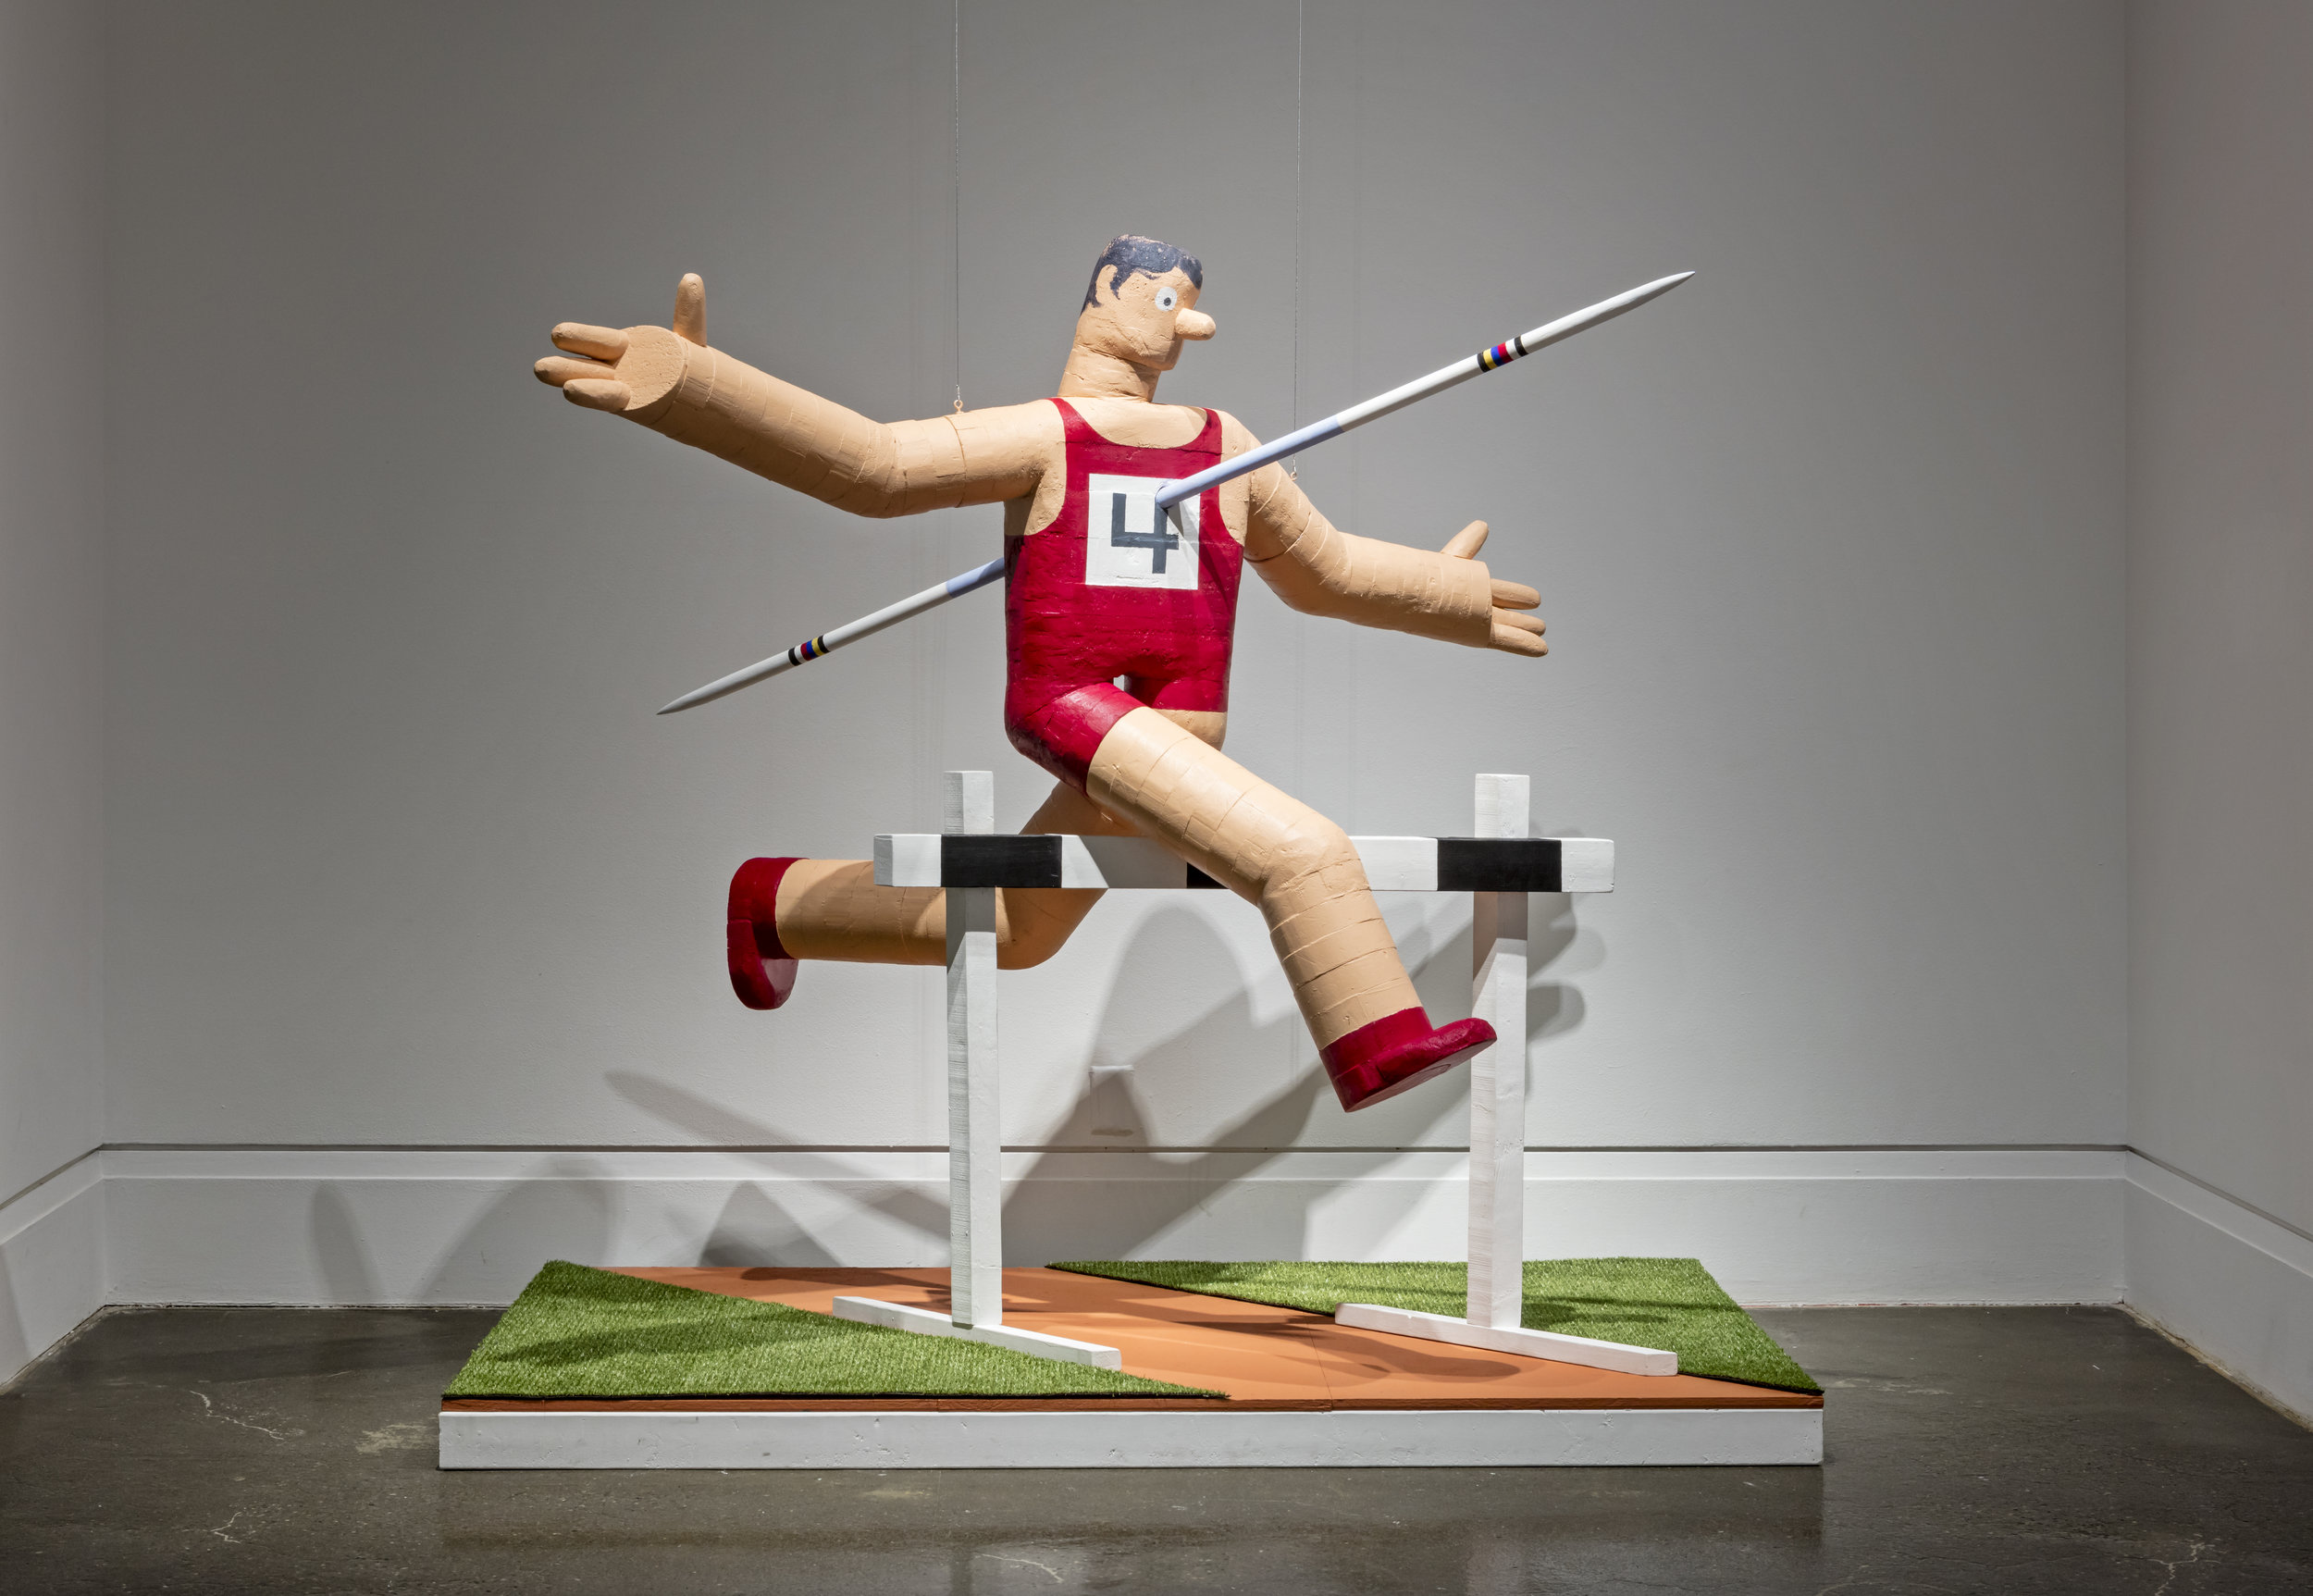 Hudson Christie,  Track and Field, Meeting , 2014, Insulation Board, wood, canvas, vinyl grass, acrylic paint. Robert Freeman Gallery, Art Gallery of Mississauga. Photo by Toni Hafkenscheid.